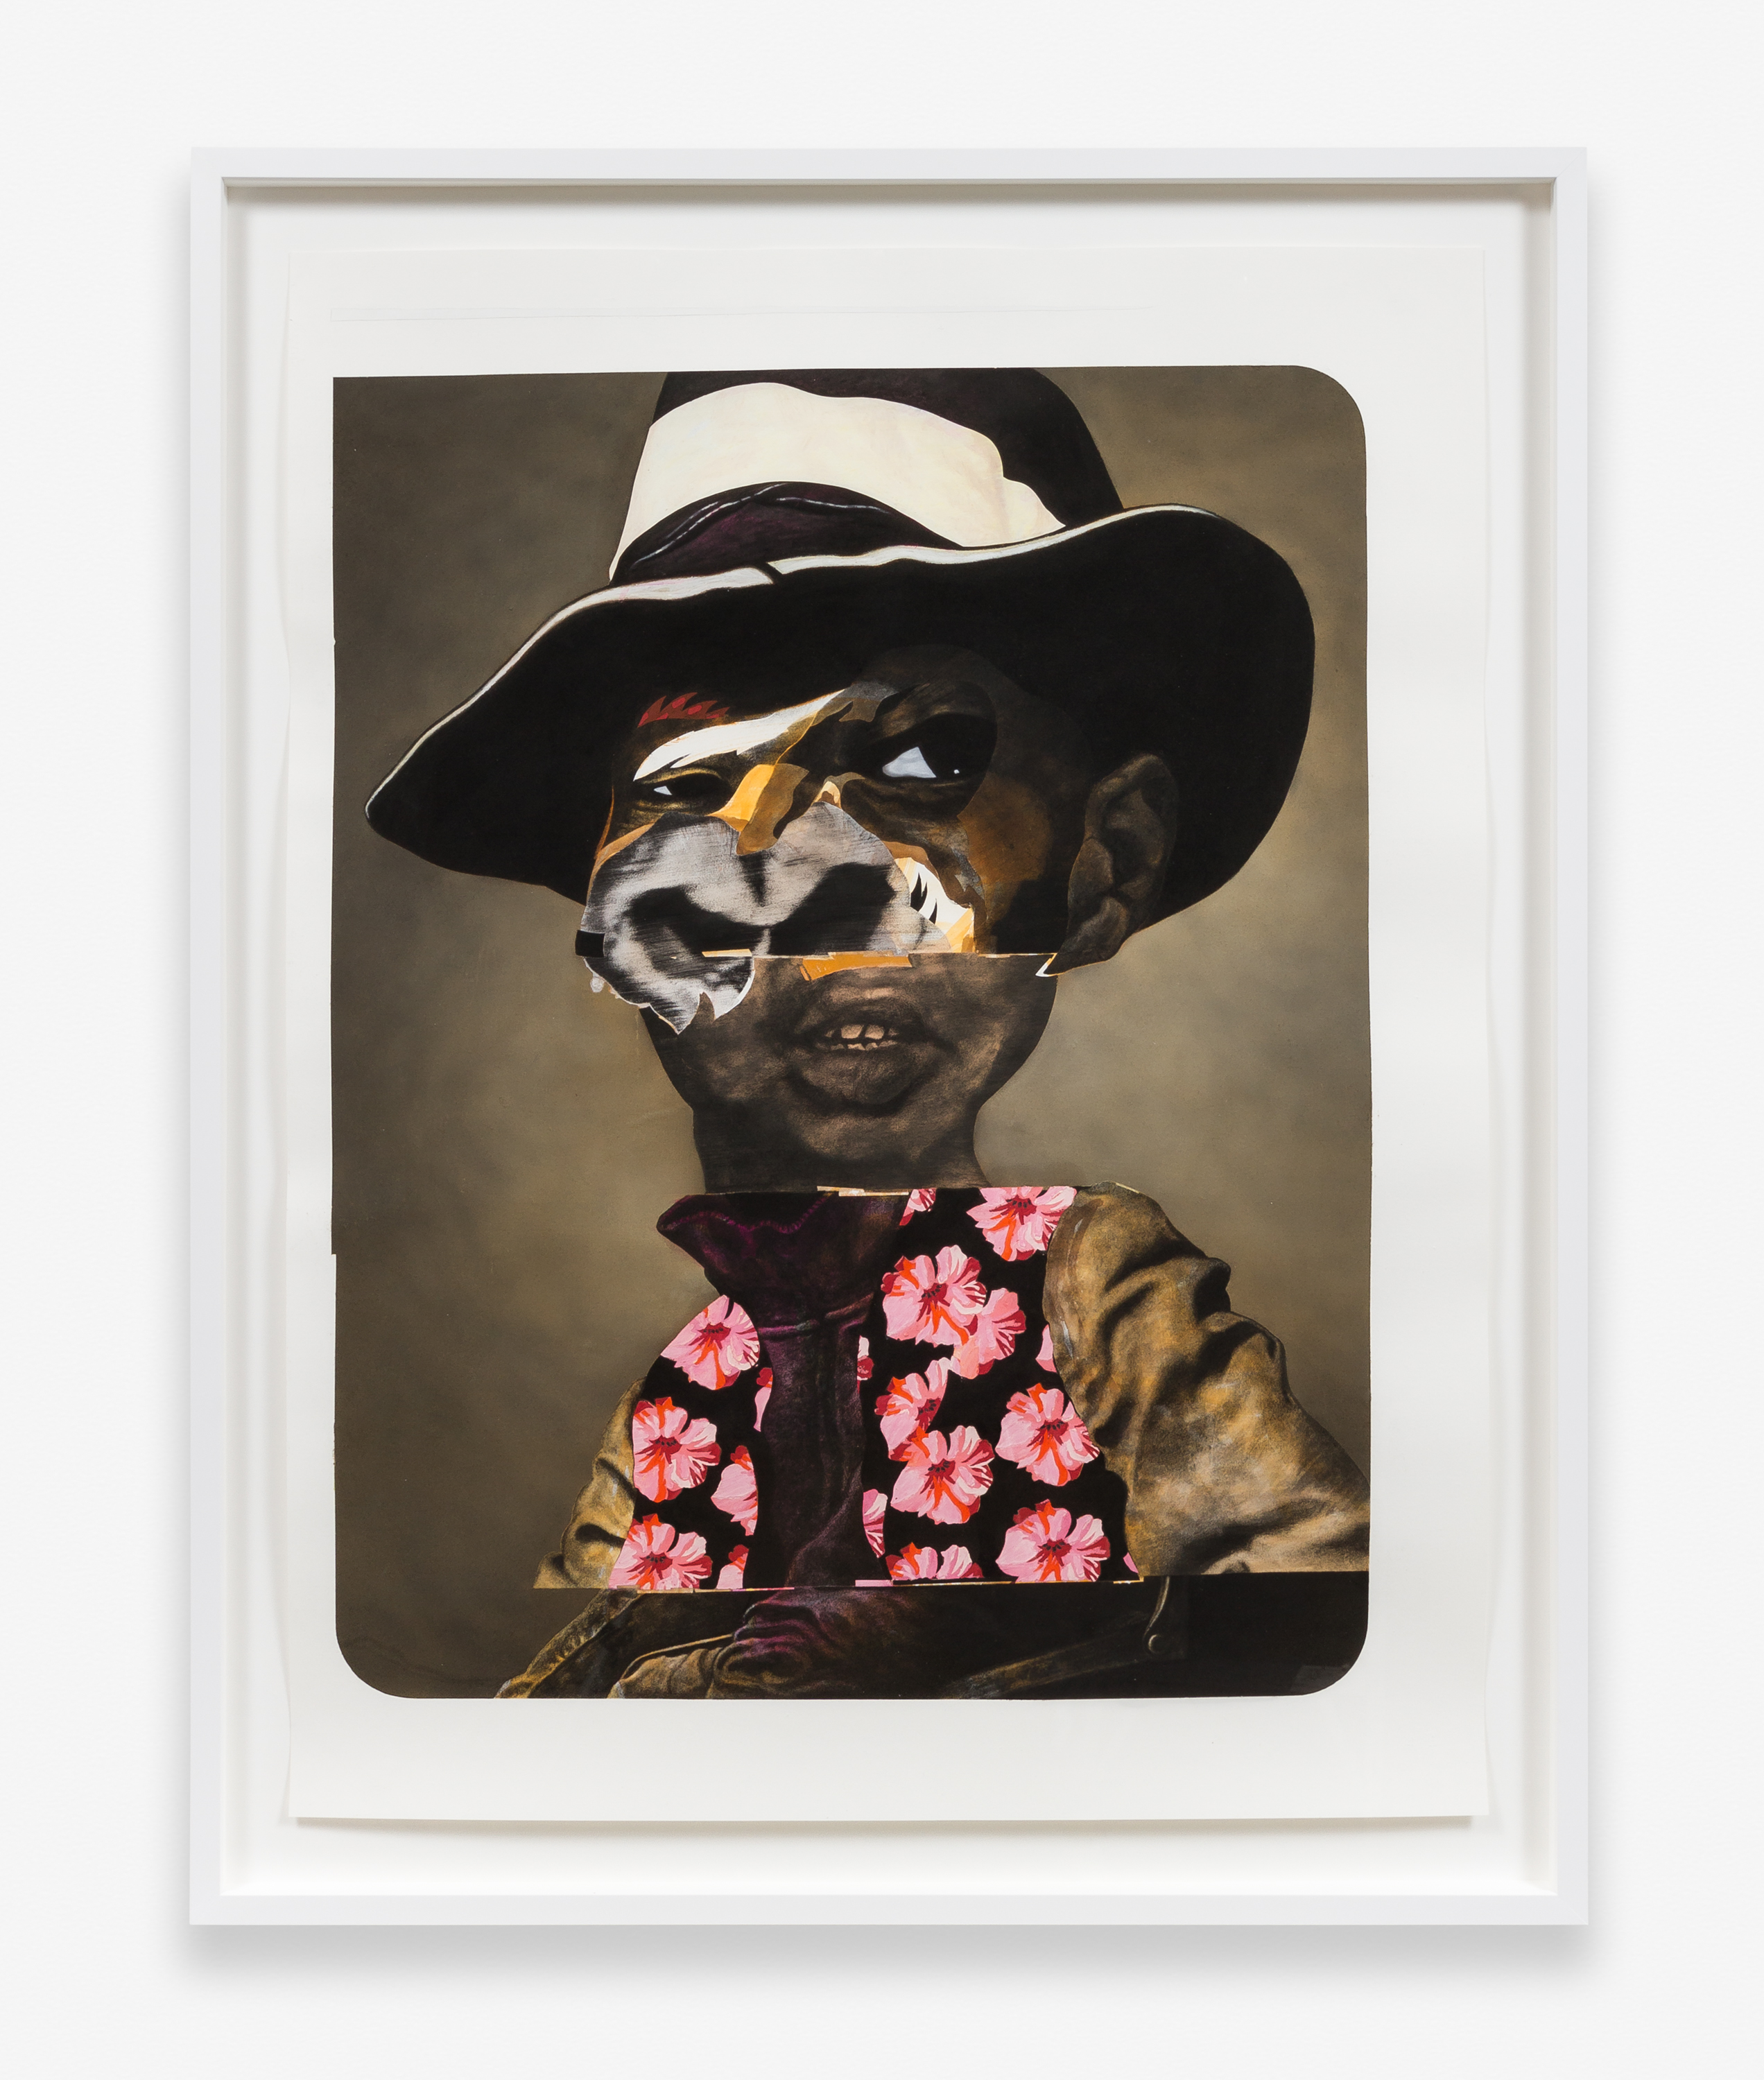 Nathaniel Mary Quinn, <em>Charles Re-Visited</em>, 2015. Black charcoal, soft pastel, oil pastel, paint stick, gouache on Coventry Vellum paper. 50 x 38 inches. Collection of Helyn Goldenberg and Michael Alper. Image courtesy of the artist and Rhona Hoffman Gallery. Photography by RCH.